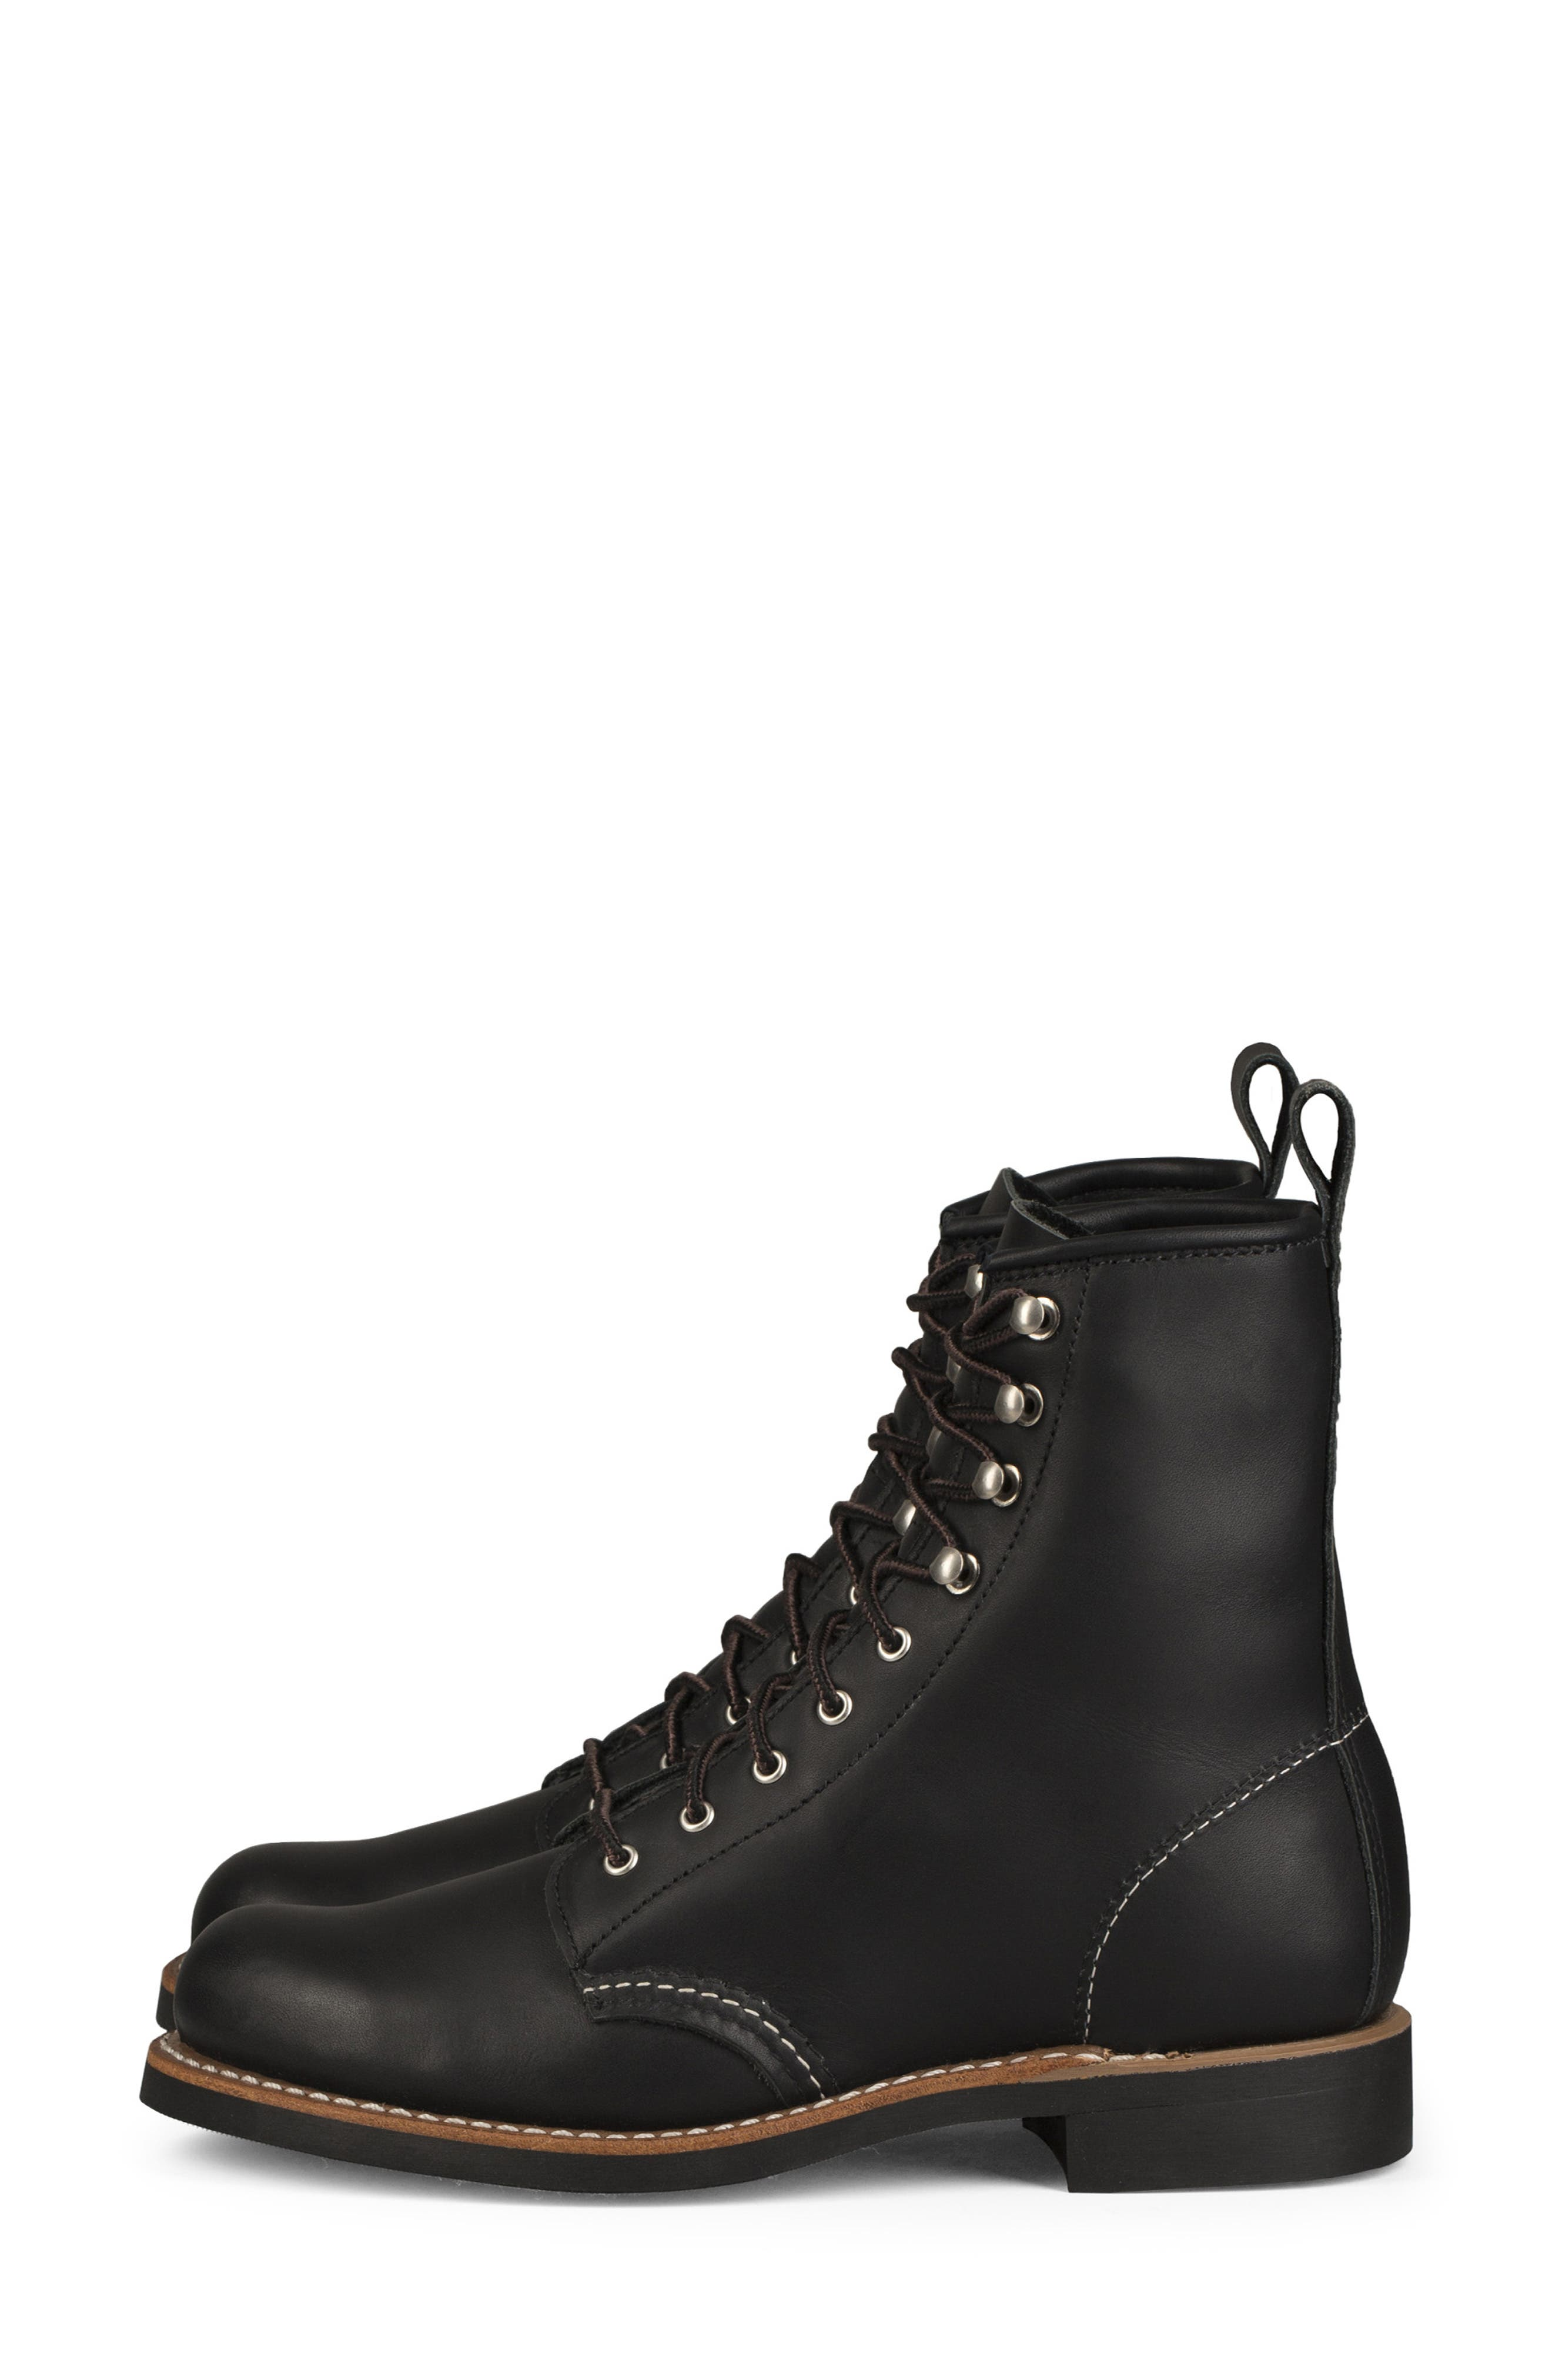 Silversmith Boot,                             Alternate thumbnail 2, color,                             BLACK BOUNDARY LEATHER